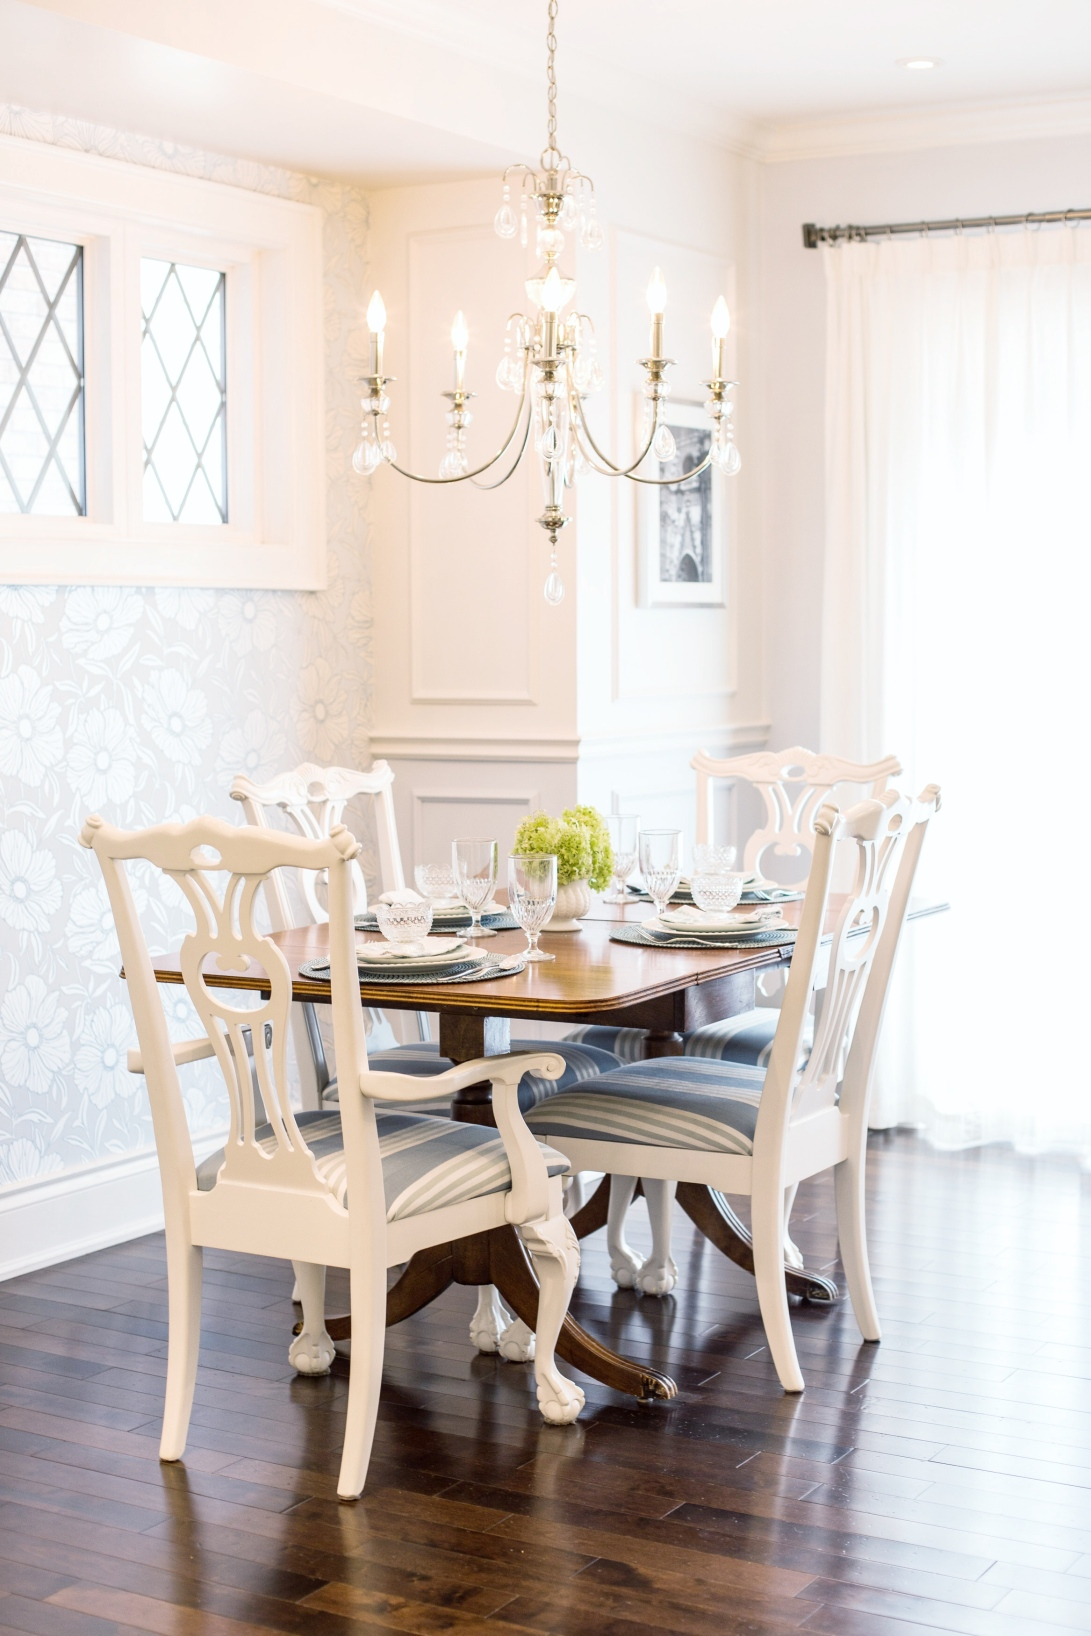 View More: http://jennabos.pass.us/hendersonhouse